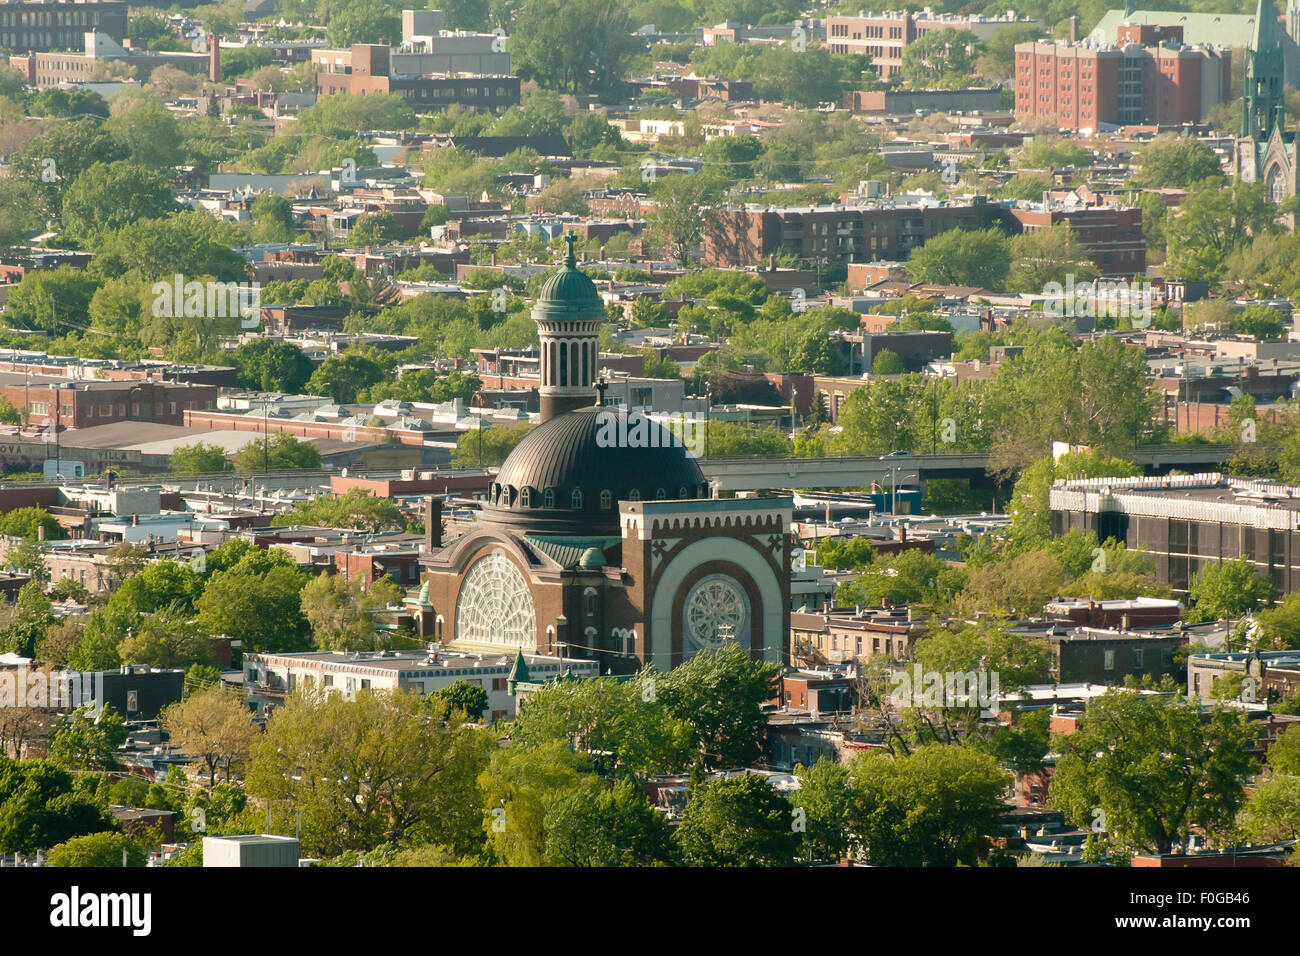 St Michael & St Anthony Church - Montreal - Canada - Stock Image